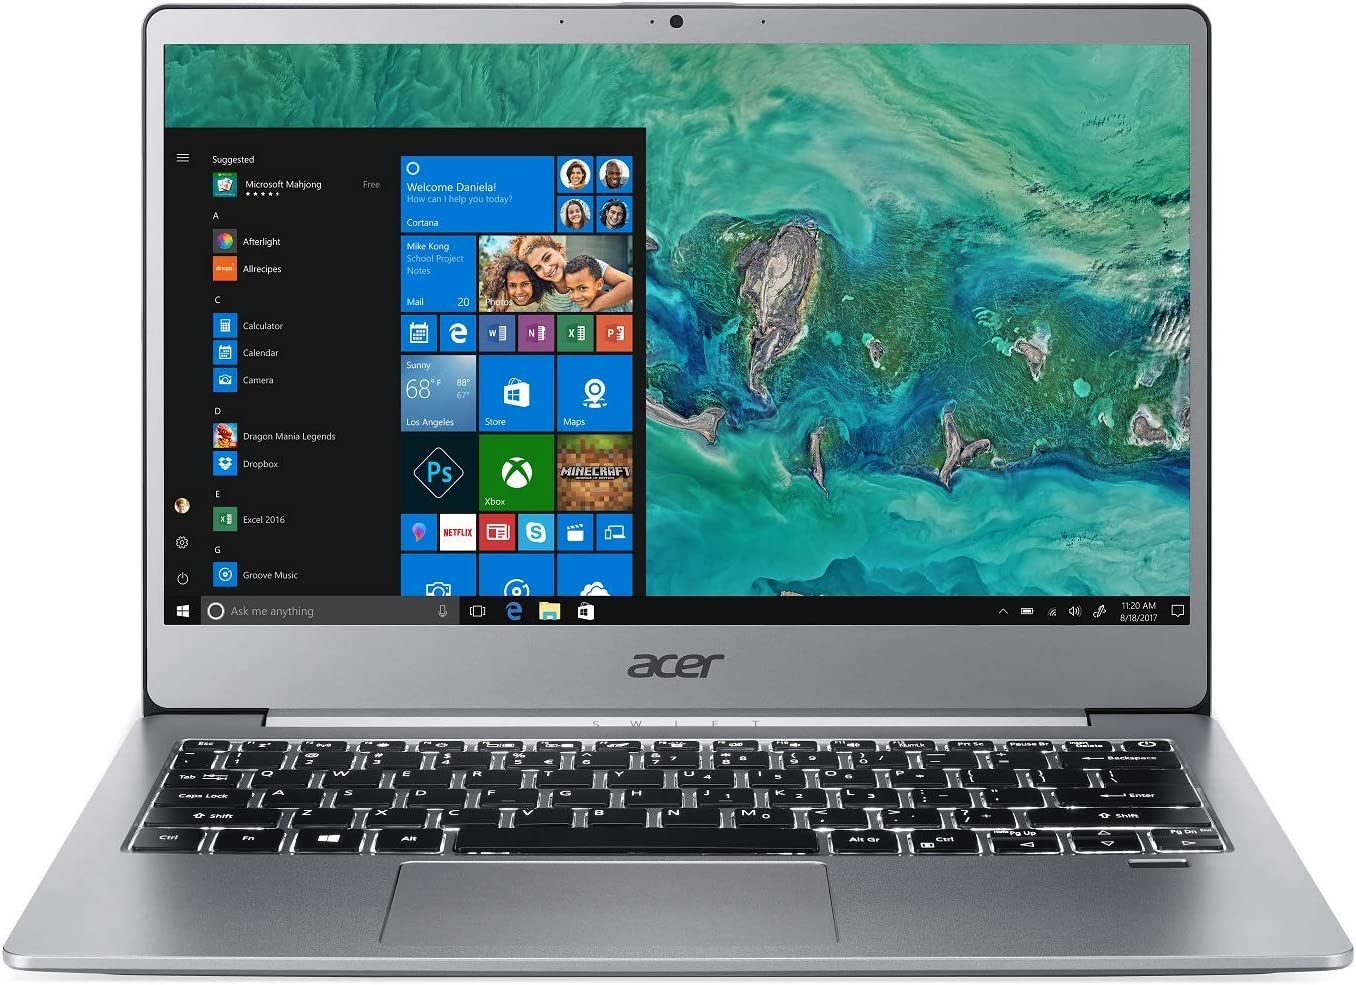 "Acer Swift 3 SF313-51-50WL Laptop, 14"" Full HD, 8th Gen Intel Core i5-8250U, 8GB DDR4, 256GB PCIe SSD, 4G LTE, Back-lit Keyboard, Windows 10 (Renewed)"